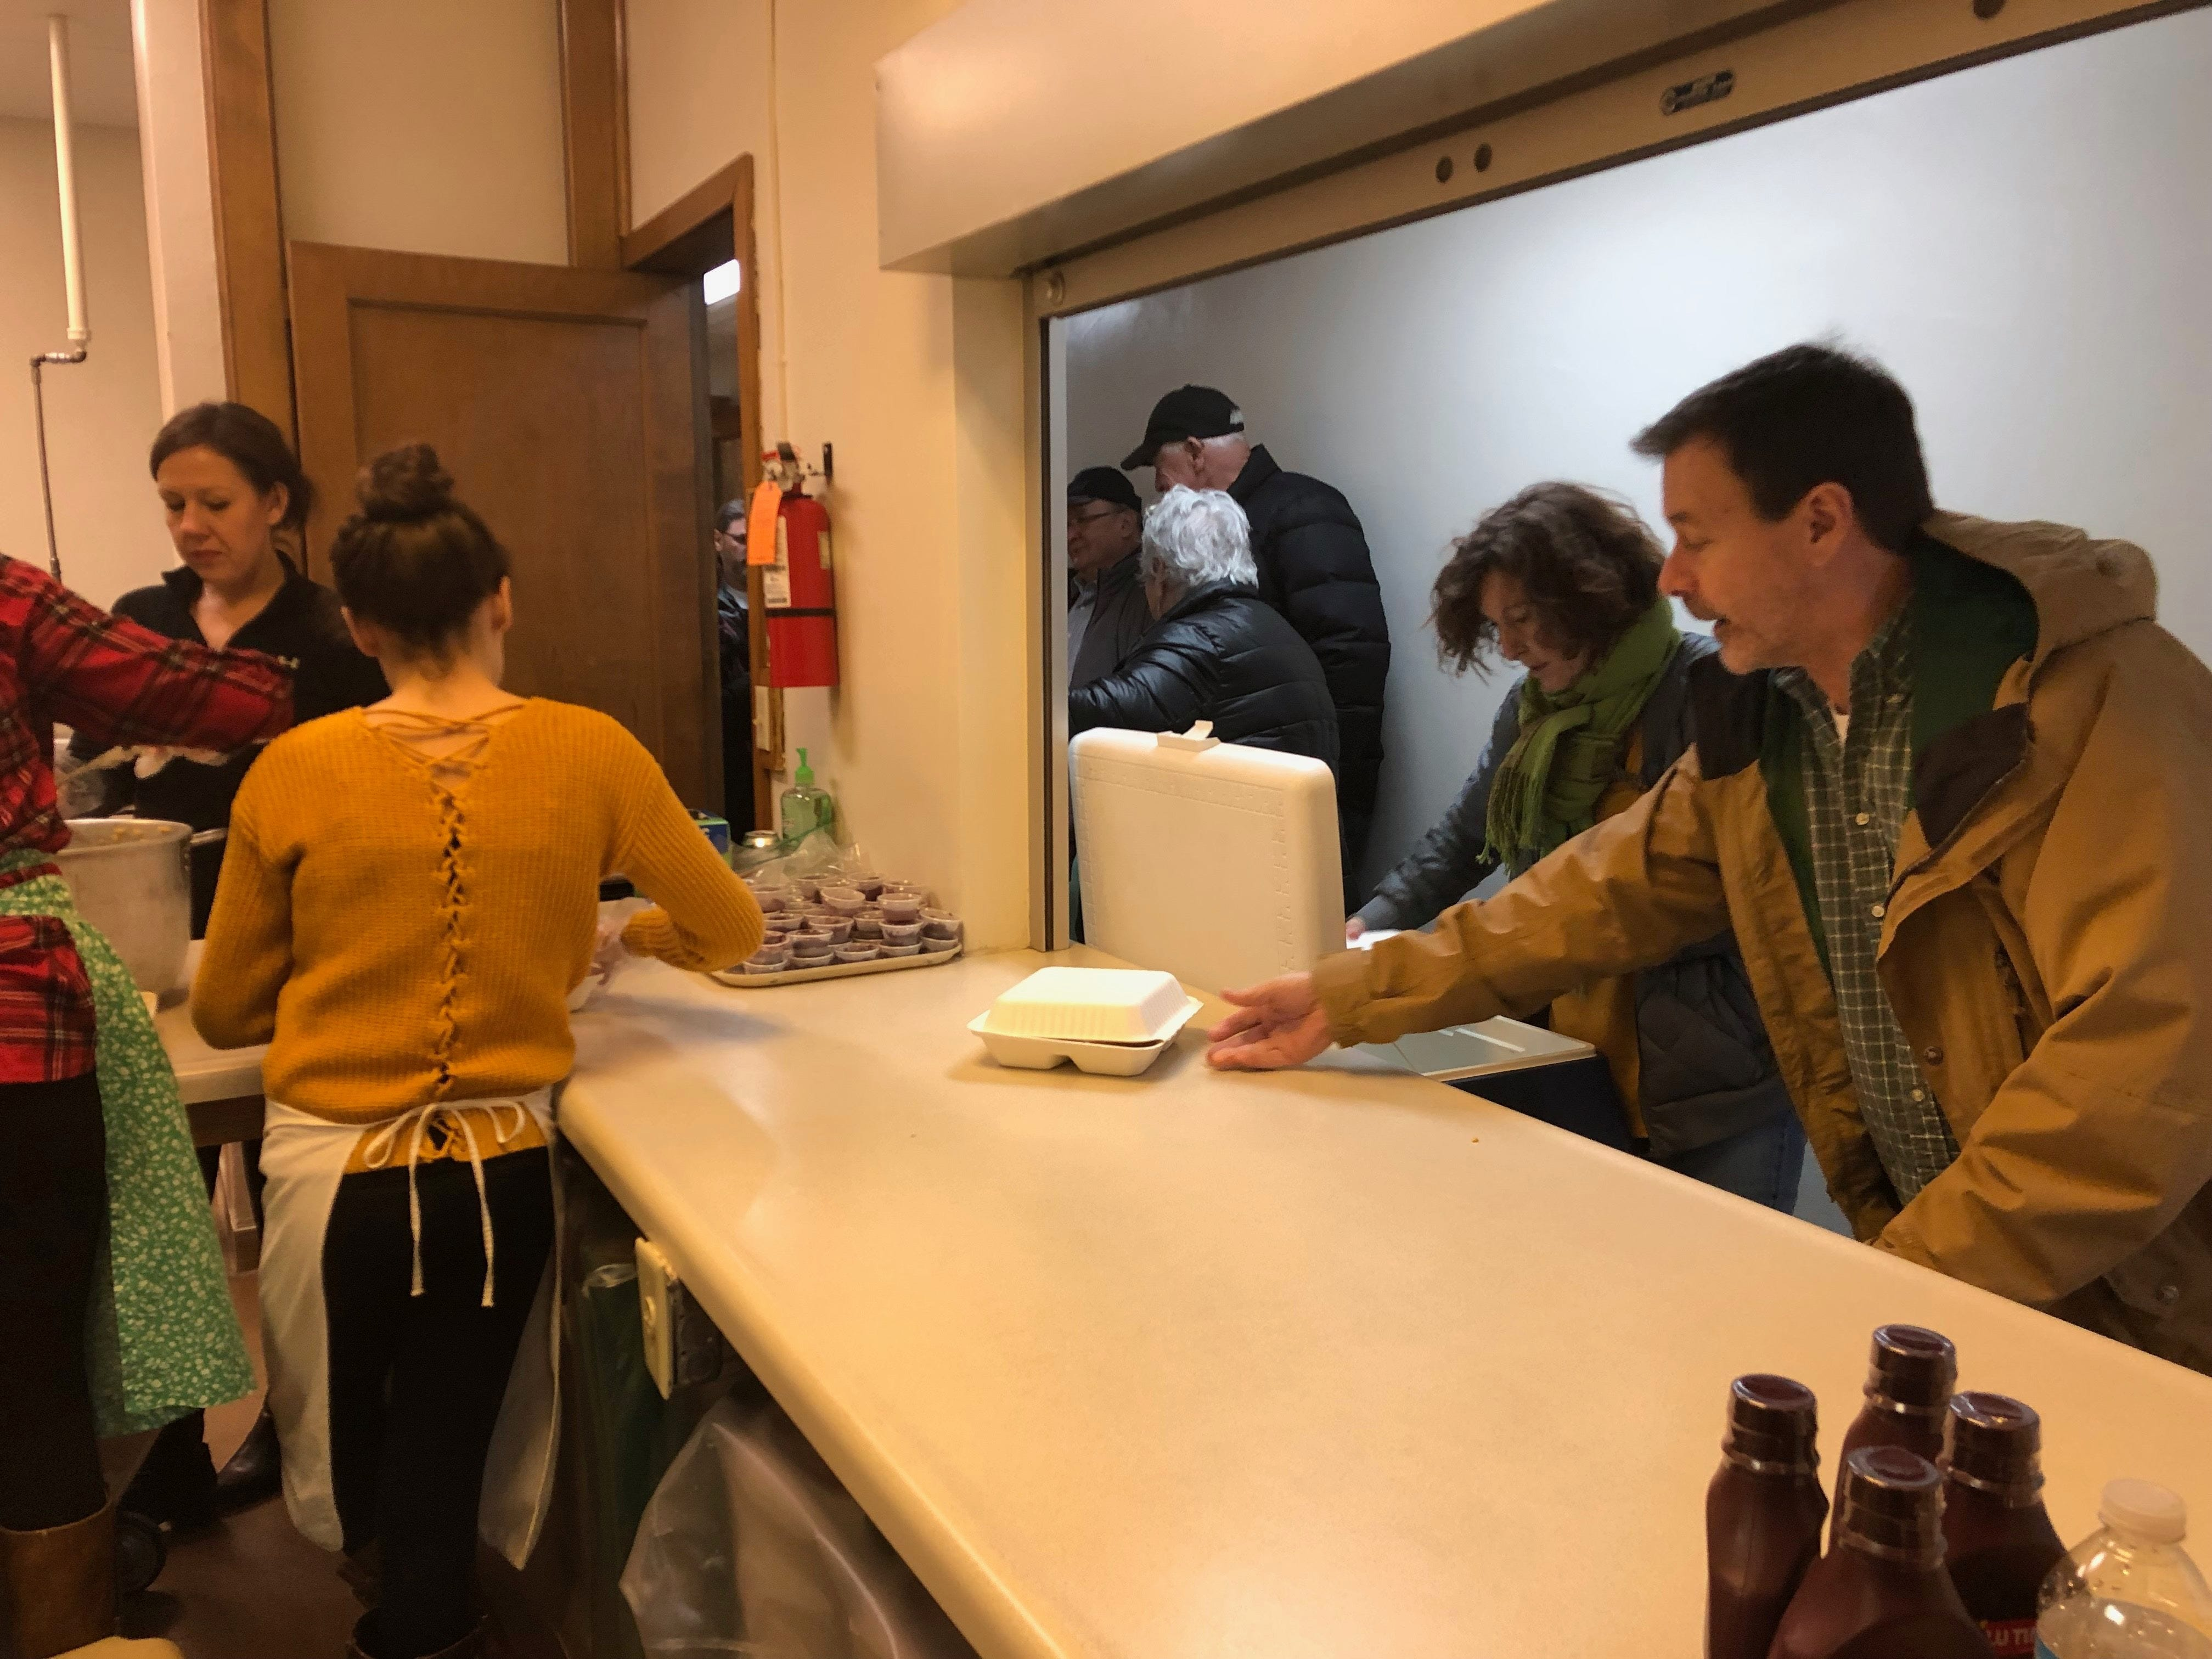 Voluteers load up Thanksgiving dinners to be delivered to people in the Wausau area at the First Presbyterian Church on Nov. 22.